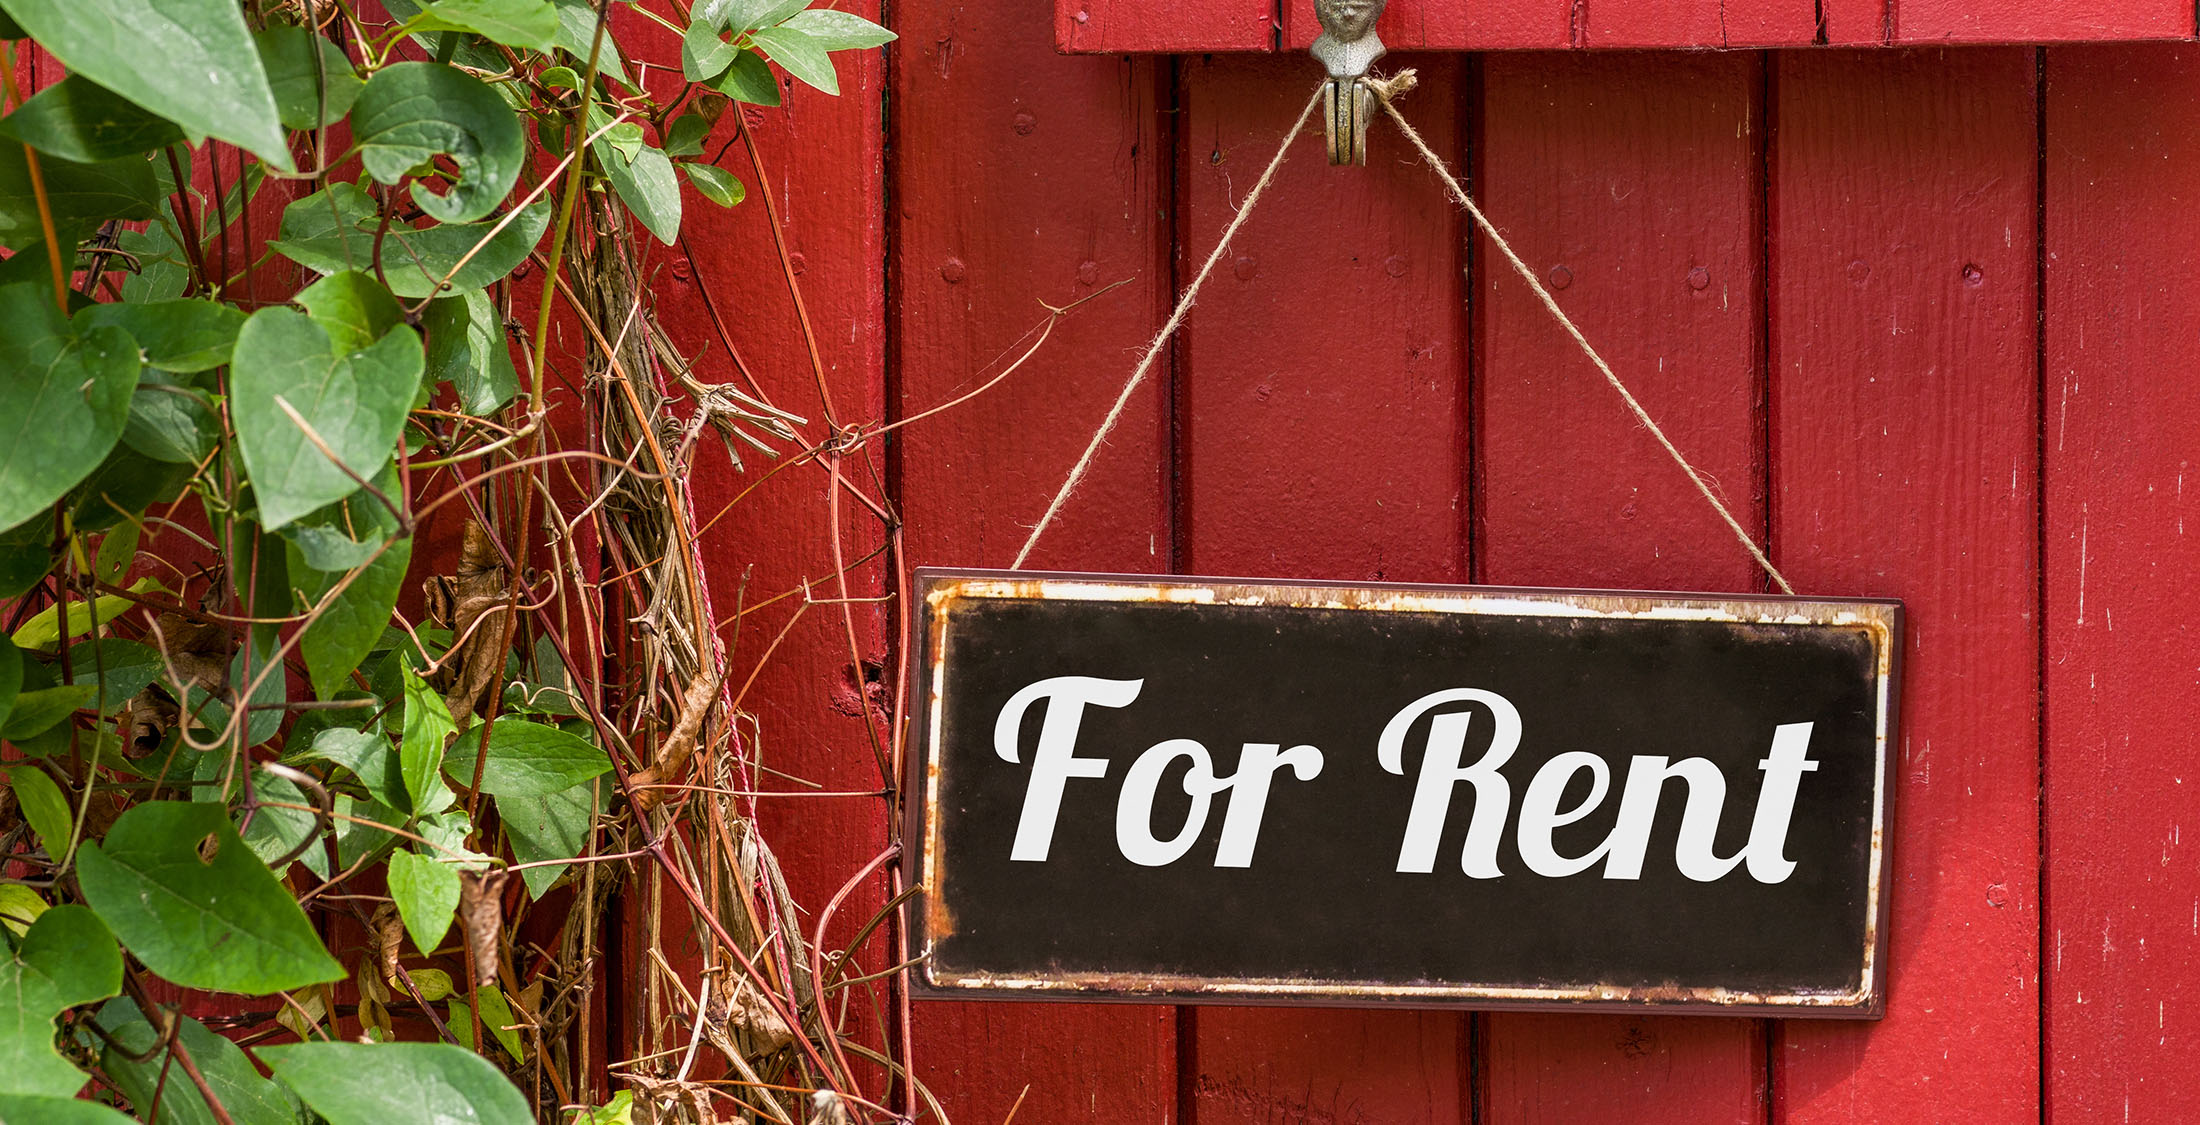 How can I find assistance with paying my rent?